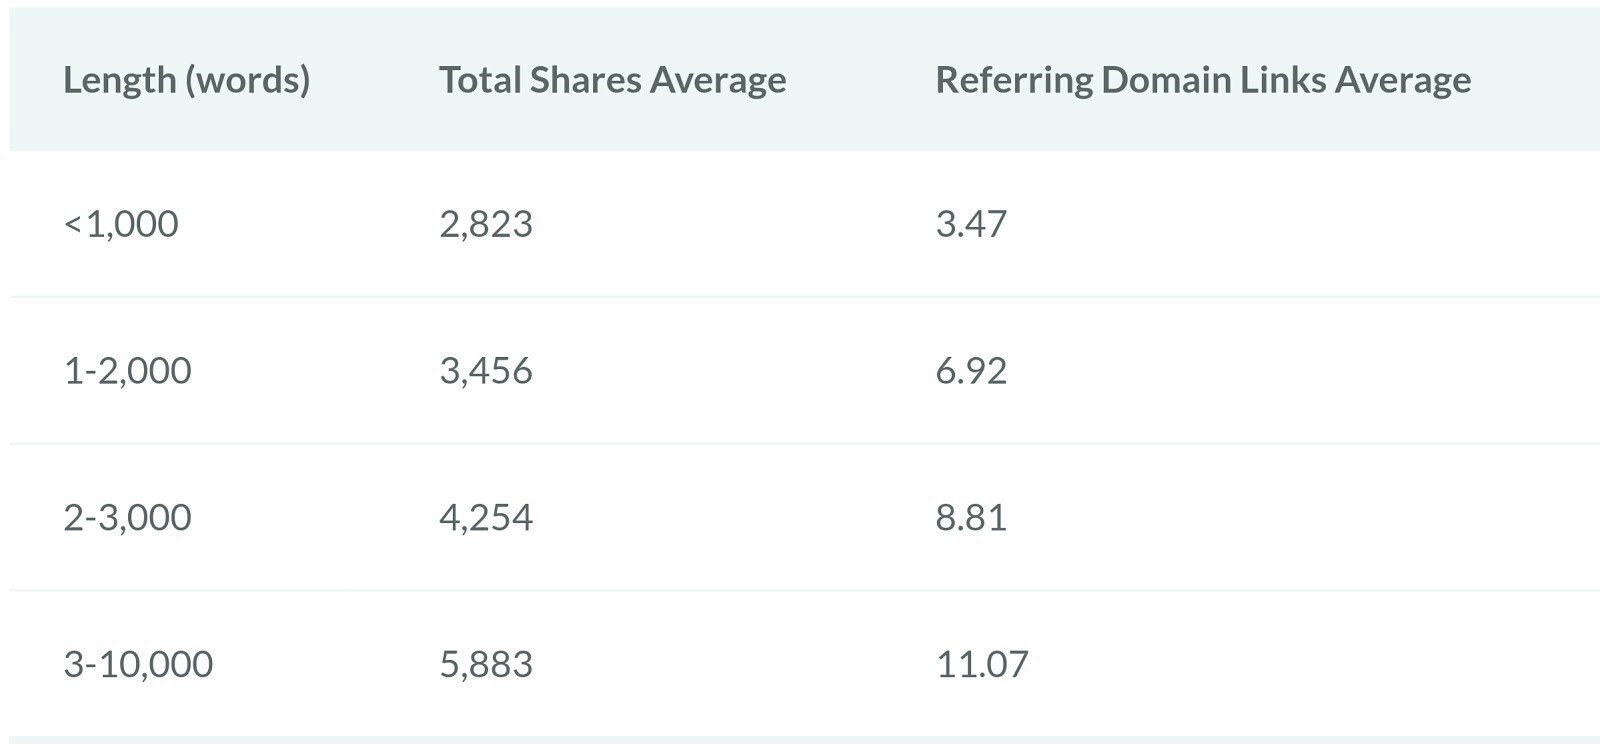 Lengthy website content tends to rank better and get shared more often.